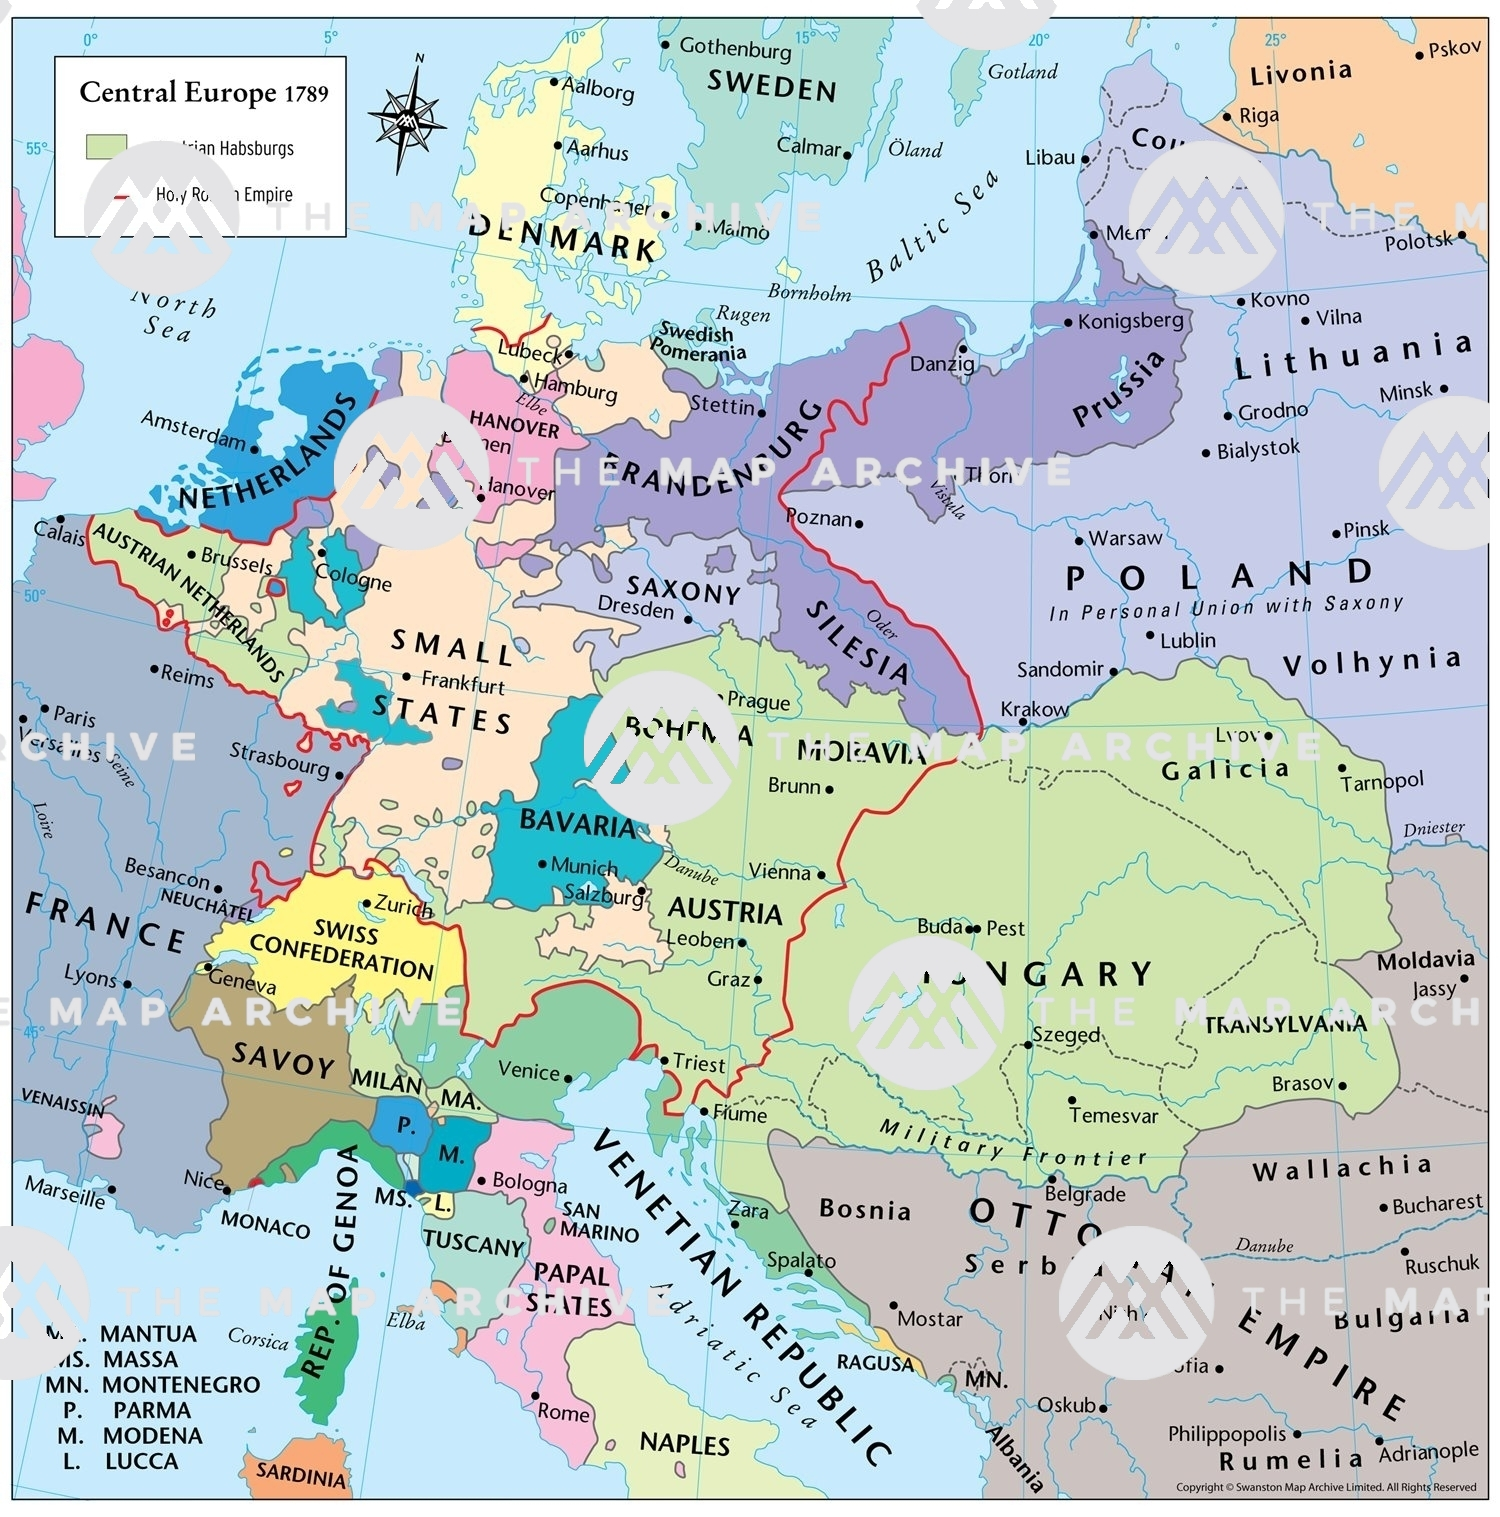 map of europe 1789 Central Europe 1789